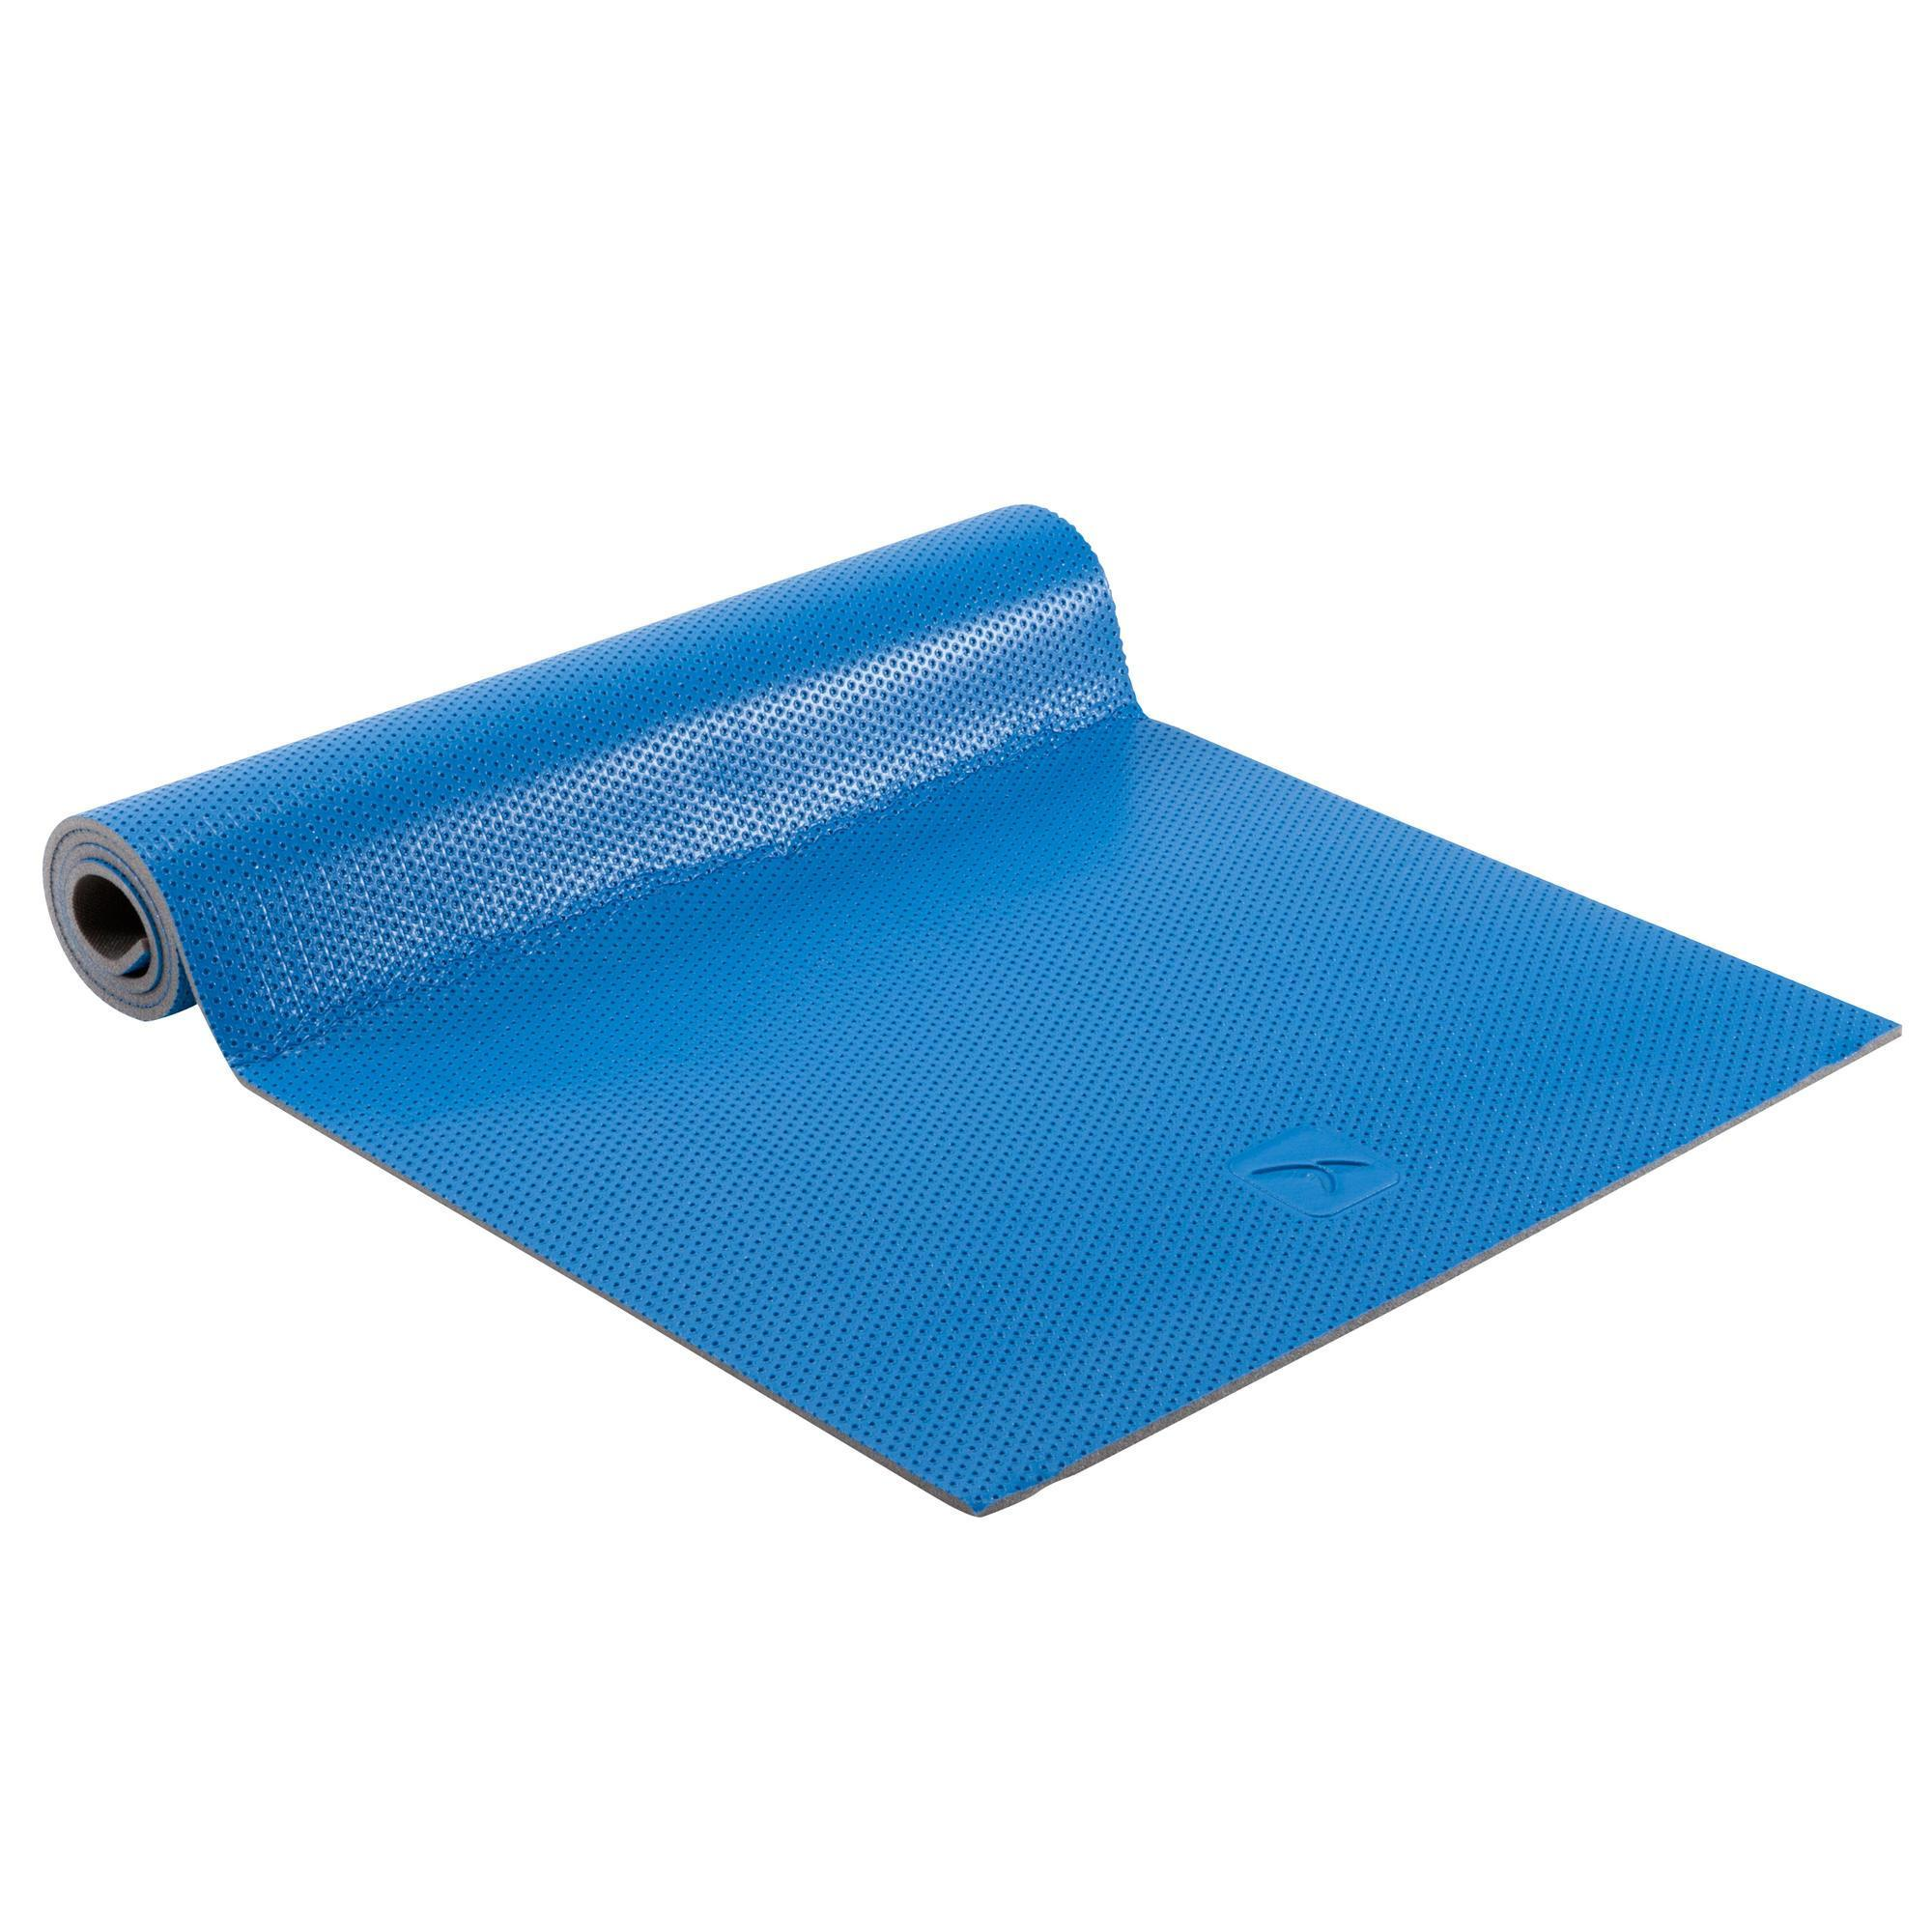 Tapis Gym Pilates 500 Bleu Domyos By Decathlon